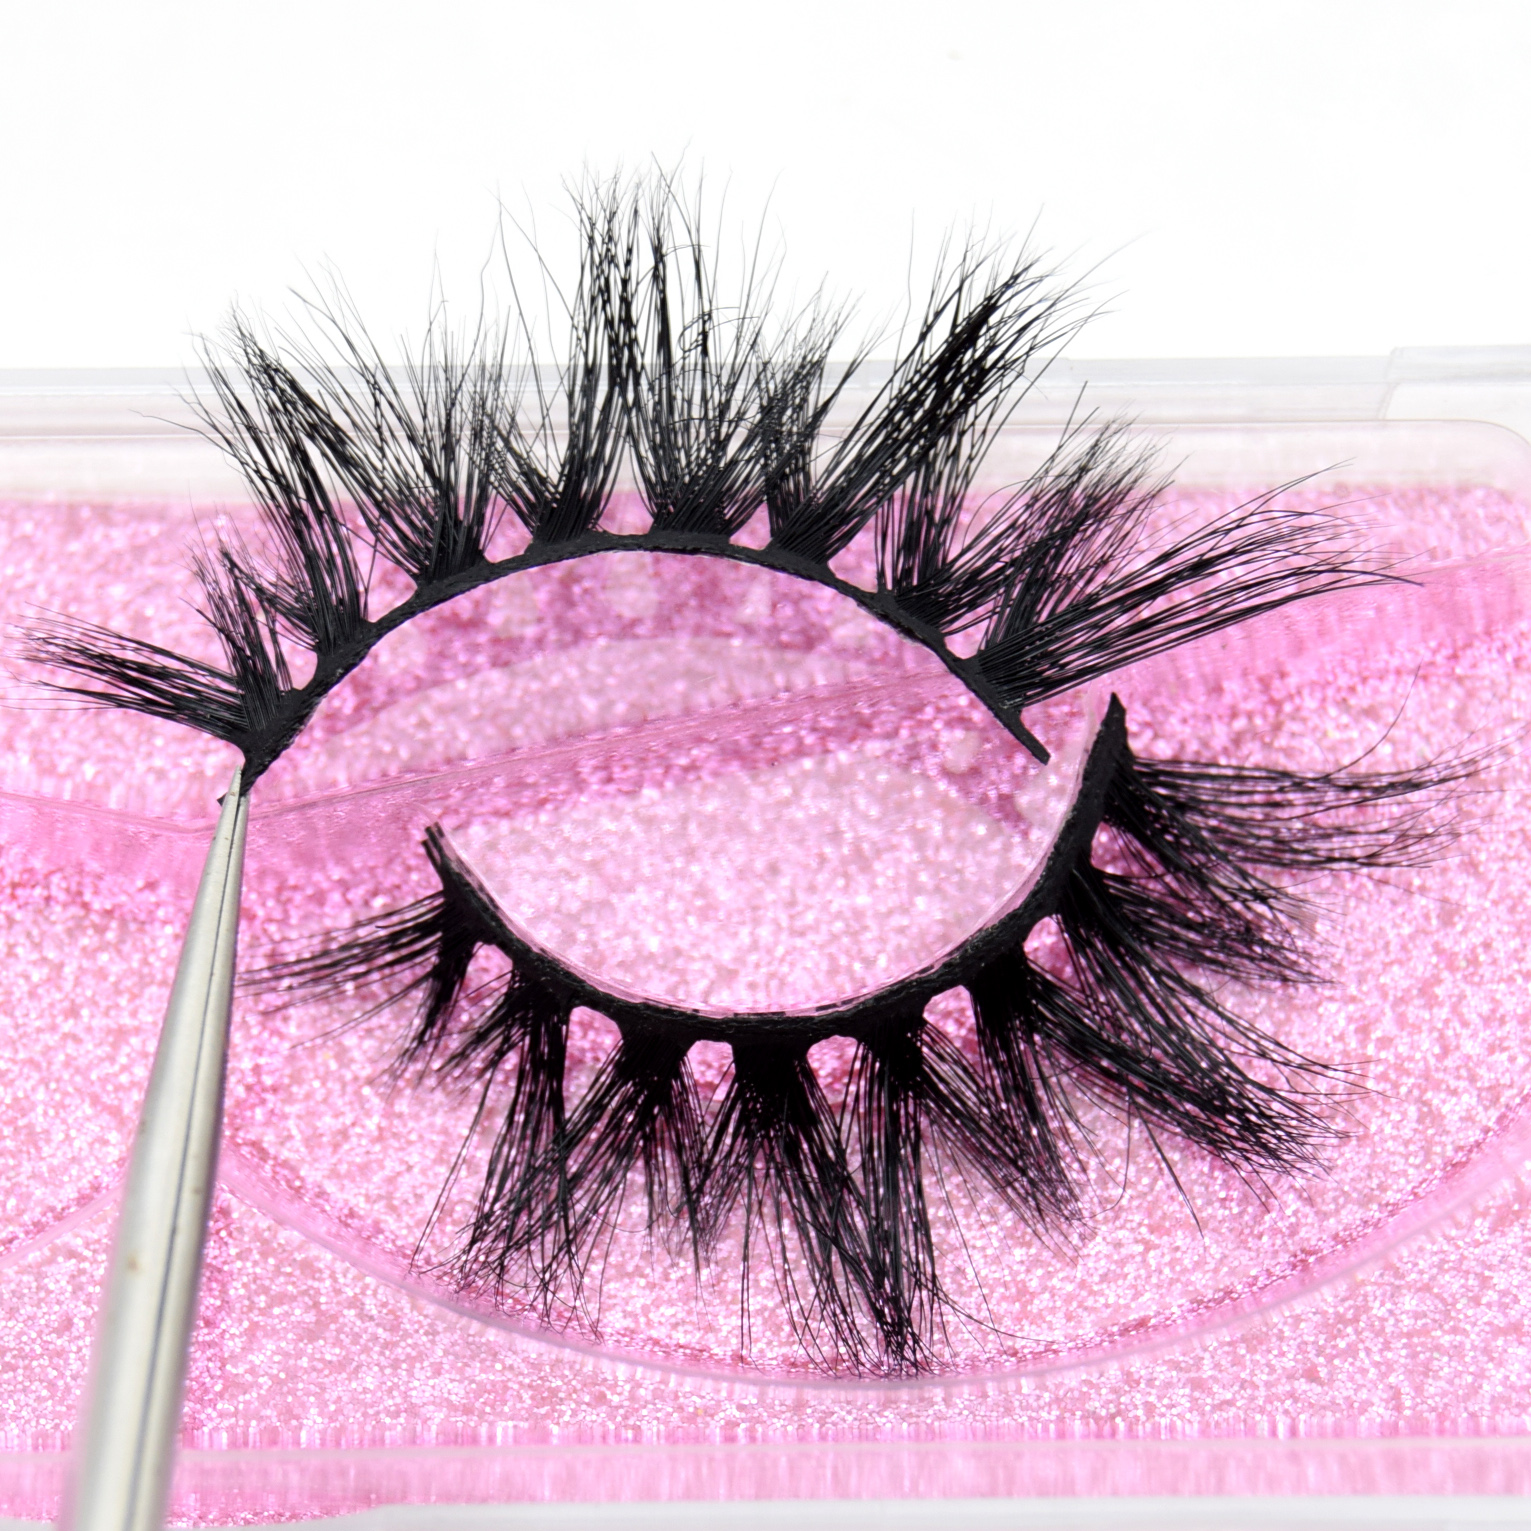 Visofree 5D Mink Eyelashes Handmade Full Strip Lashes Cruelty Free Luxury Makeup Dramatic Mink Lashes Crisscross Eye Lashes K03